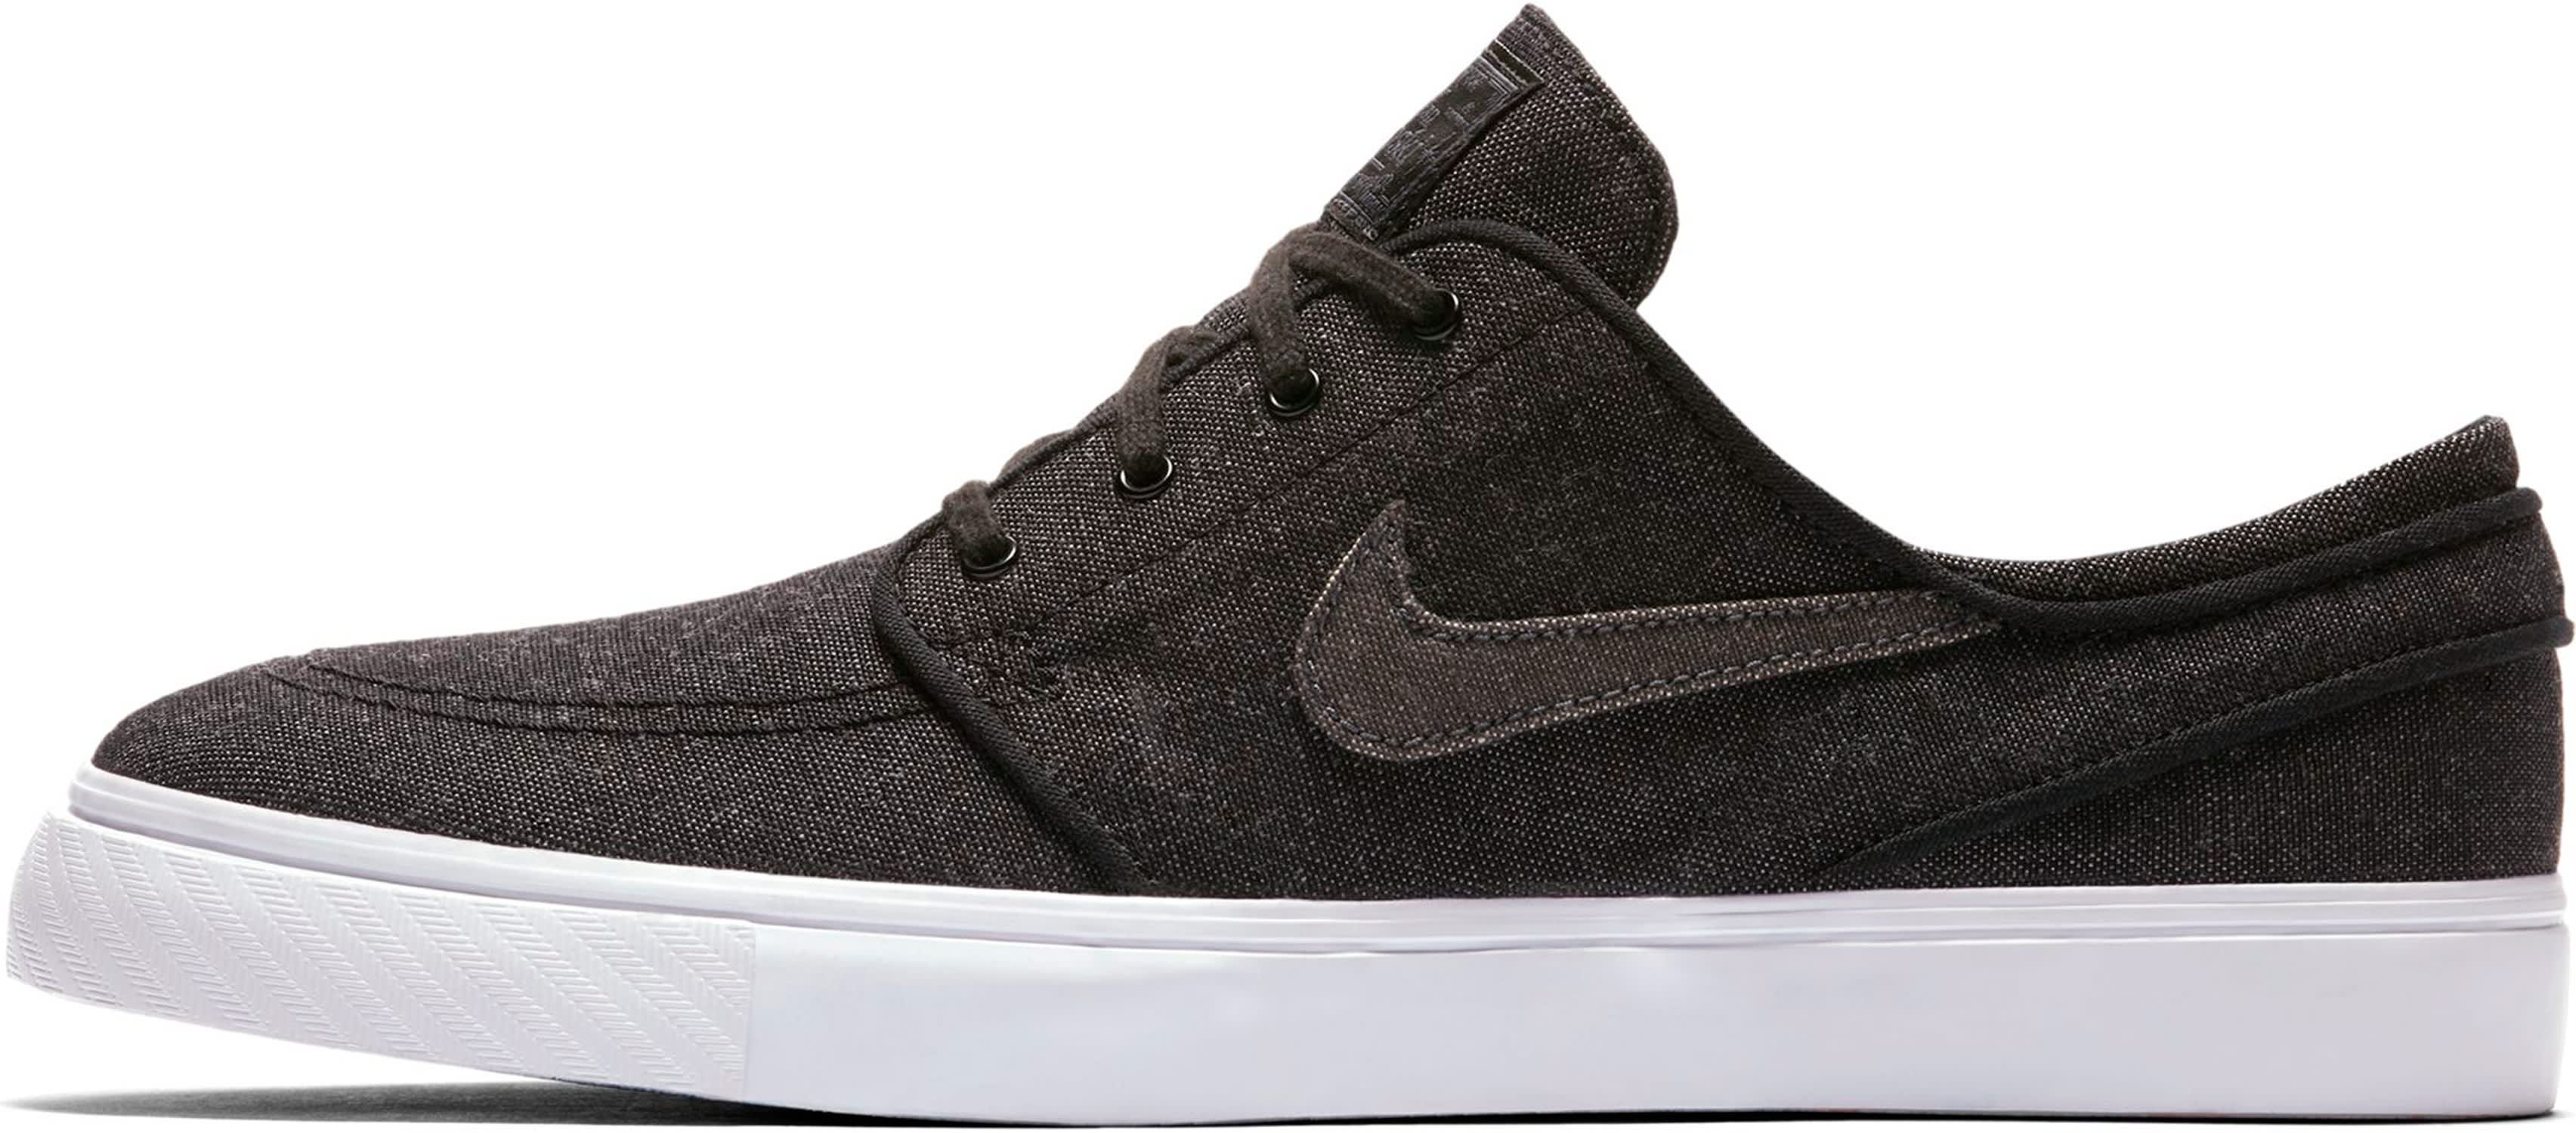 Nike SB Zoom Stefan Janoski Canvas Deconstructed Shoes (black anthracite)